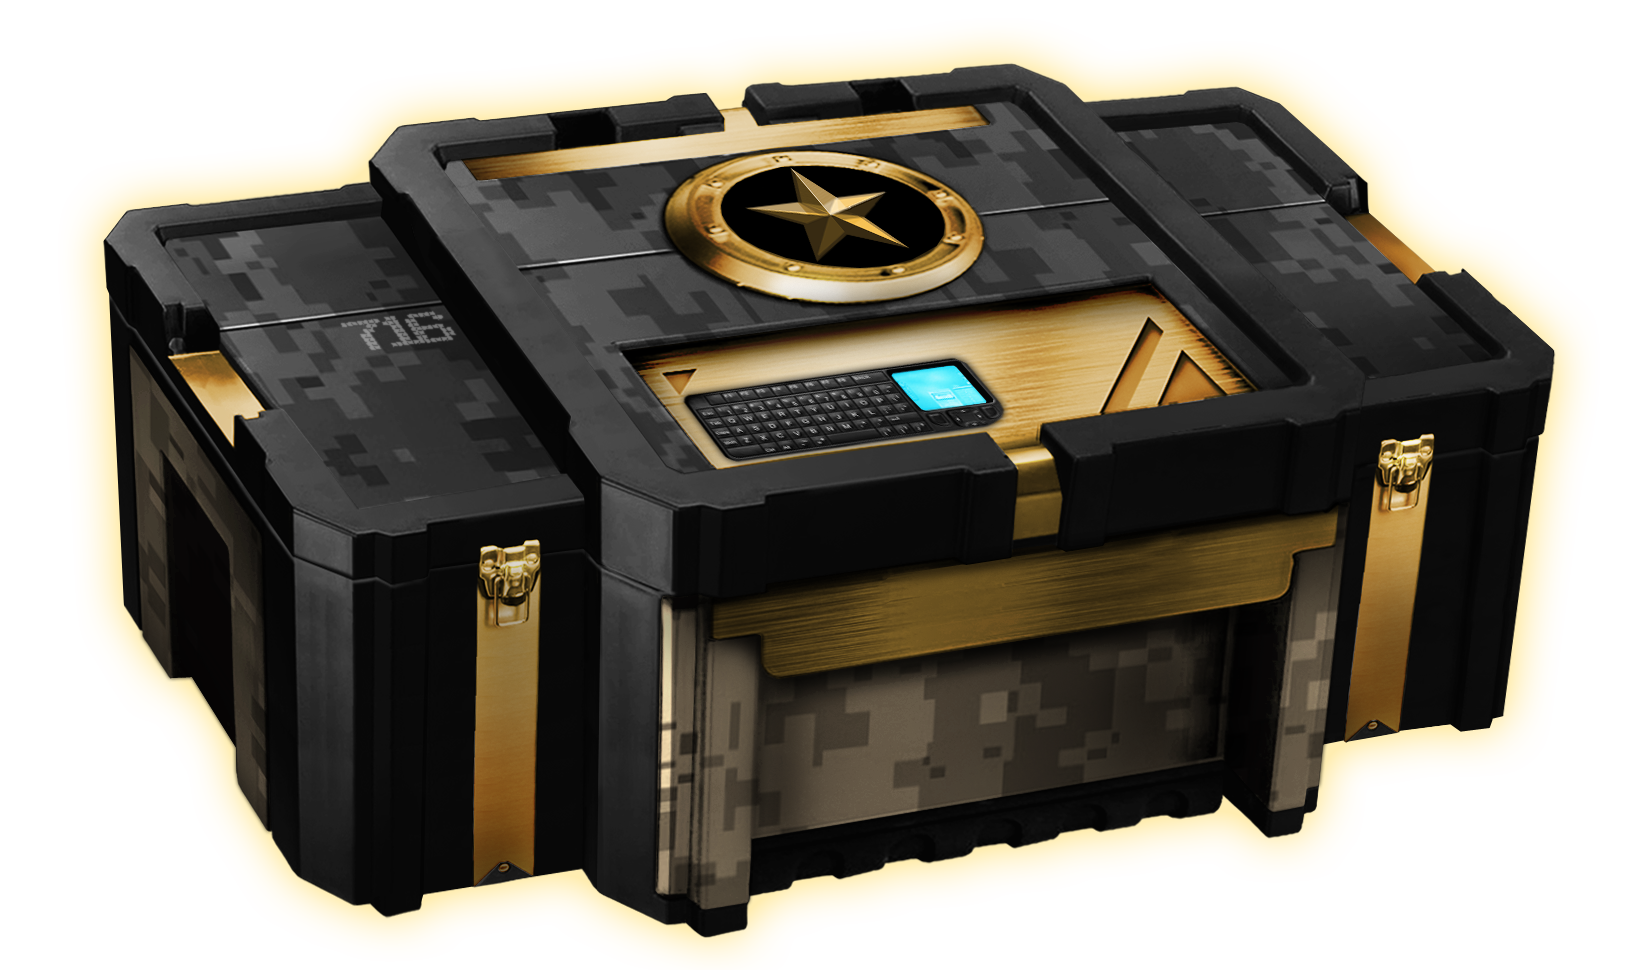 BT's Russian Supply Crate (Half-Life 2 > Skins > Crates) - GAMEBANANA